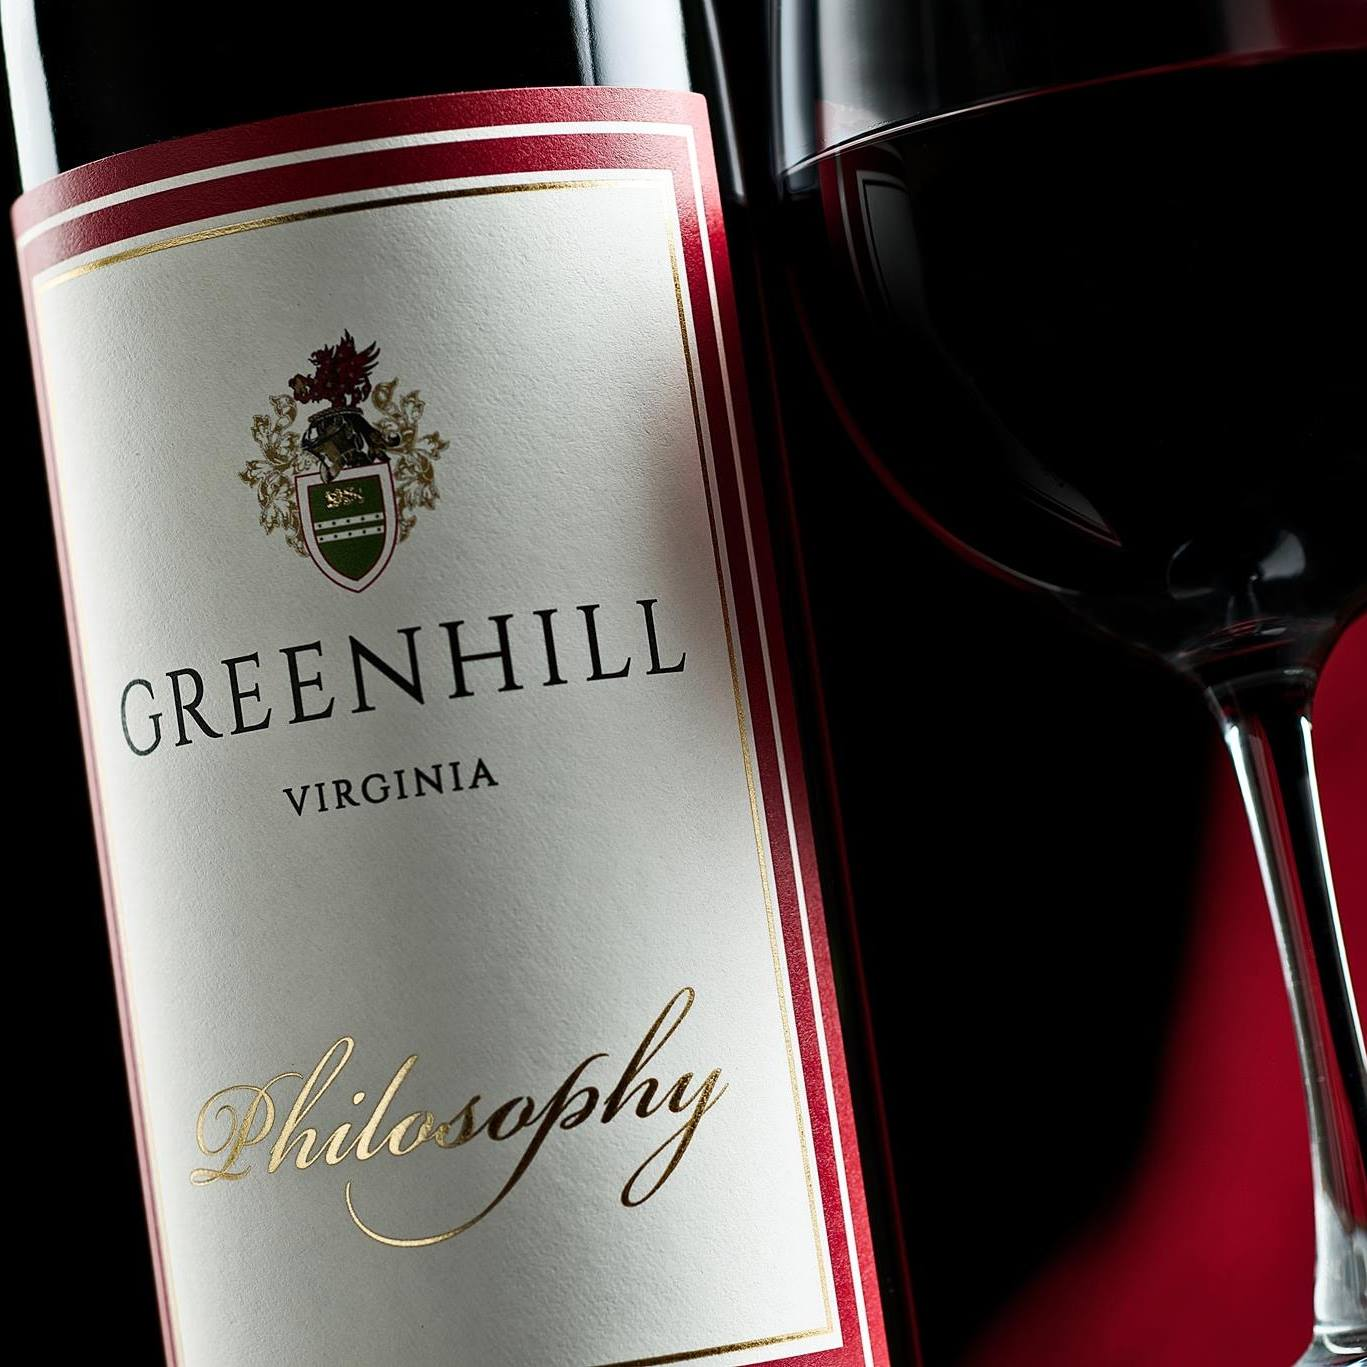 Wine tastings cost $14 per person.{ } (Image: Courtesy{ }Greenhill Winery & Vineyards)